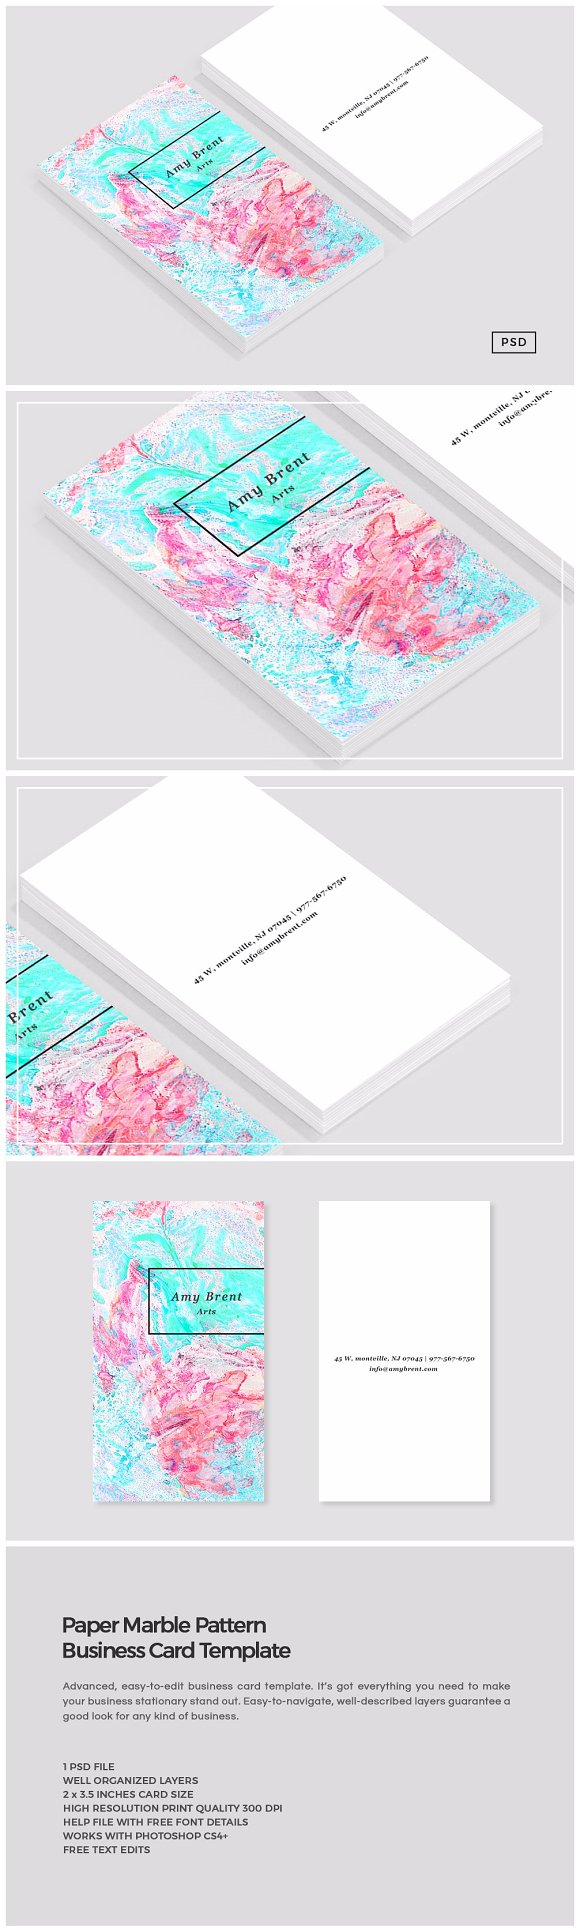 Paper marble pattern business card business card templates paper marble pattern business card business cards magicingreecefo Gallery